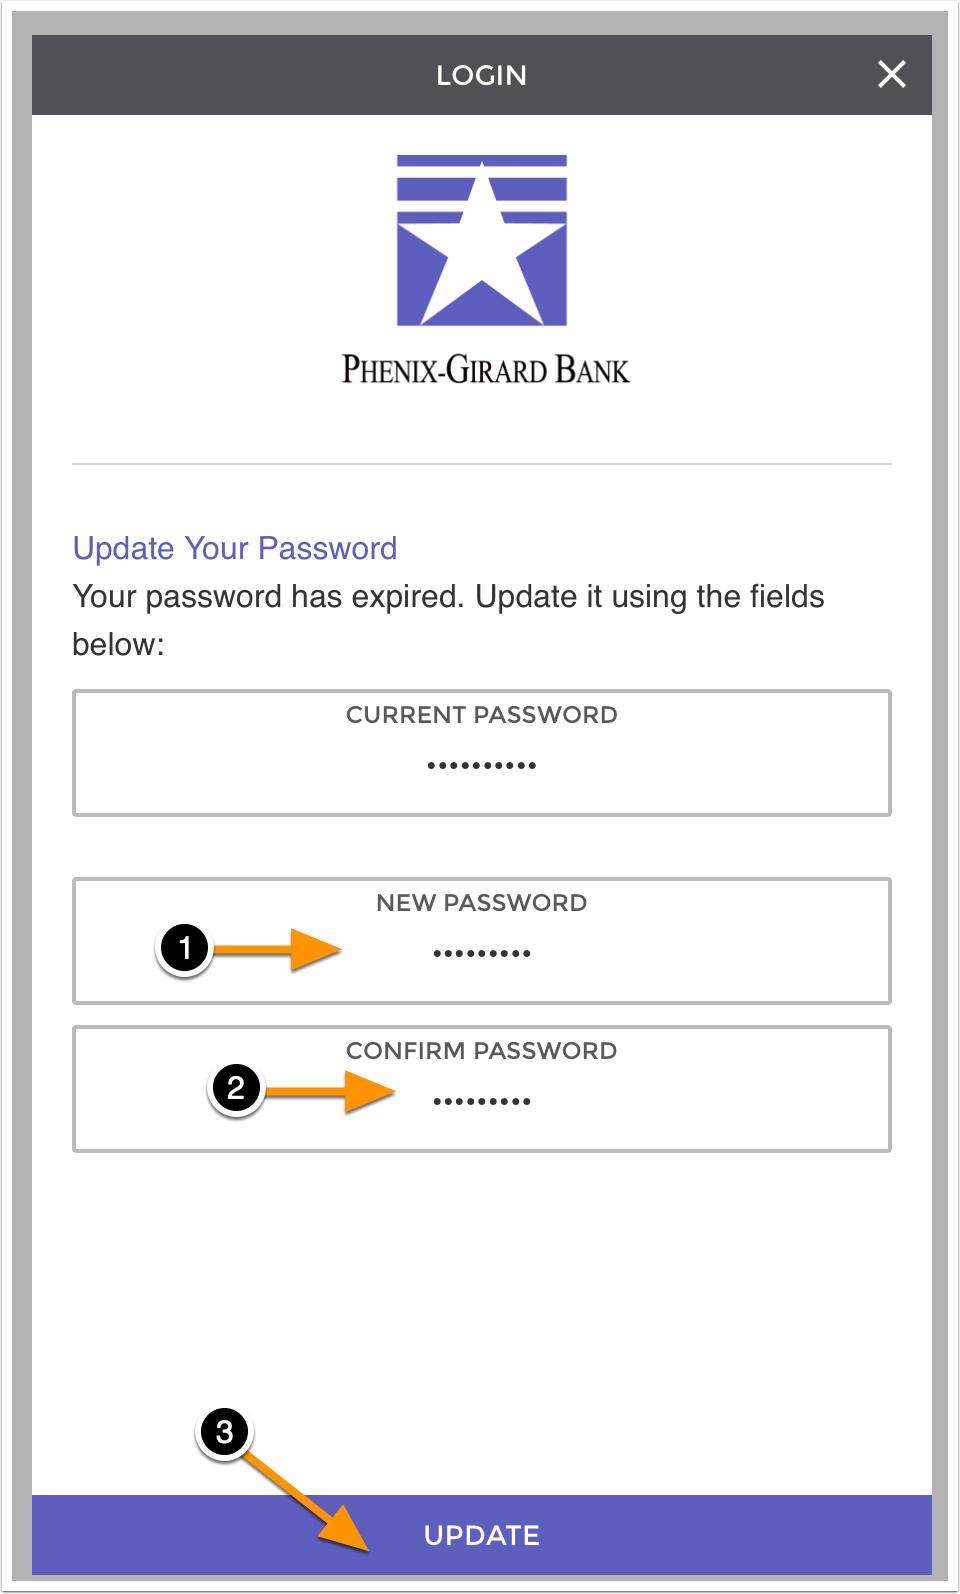 update-your-password.png